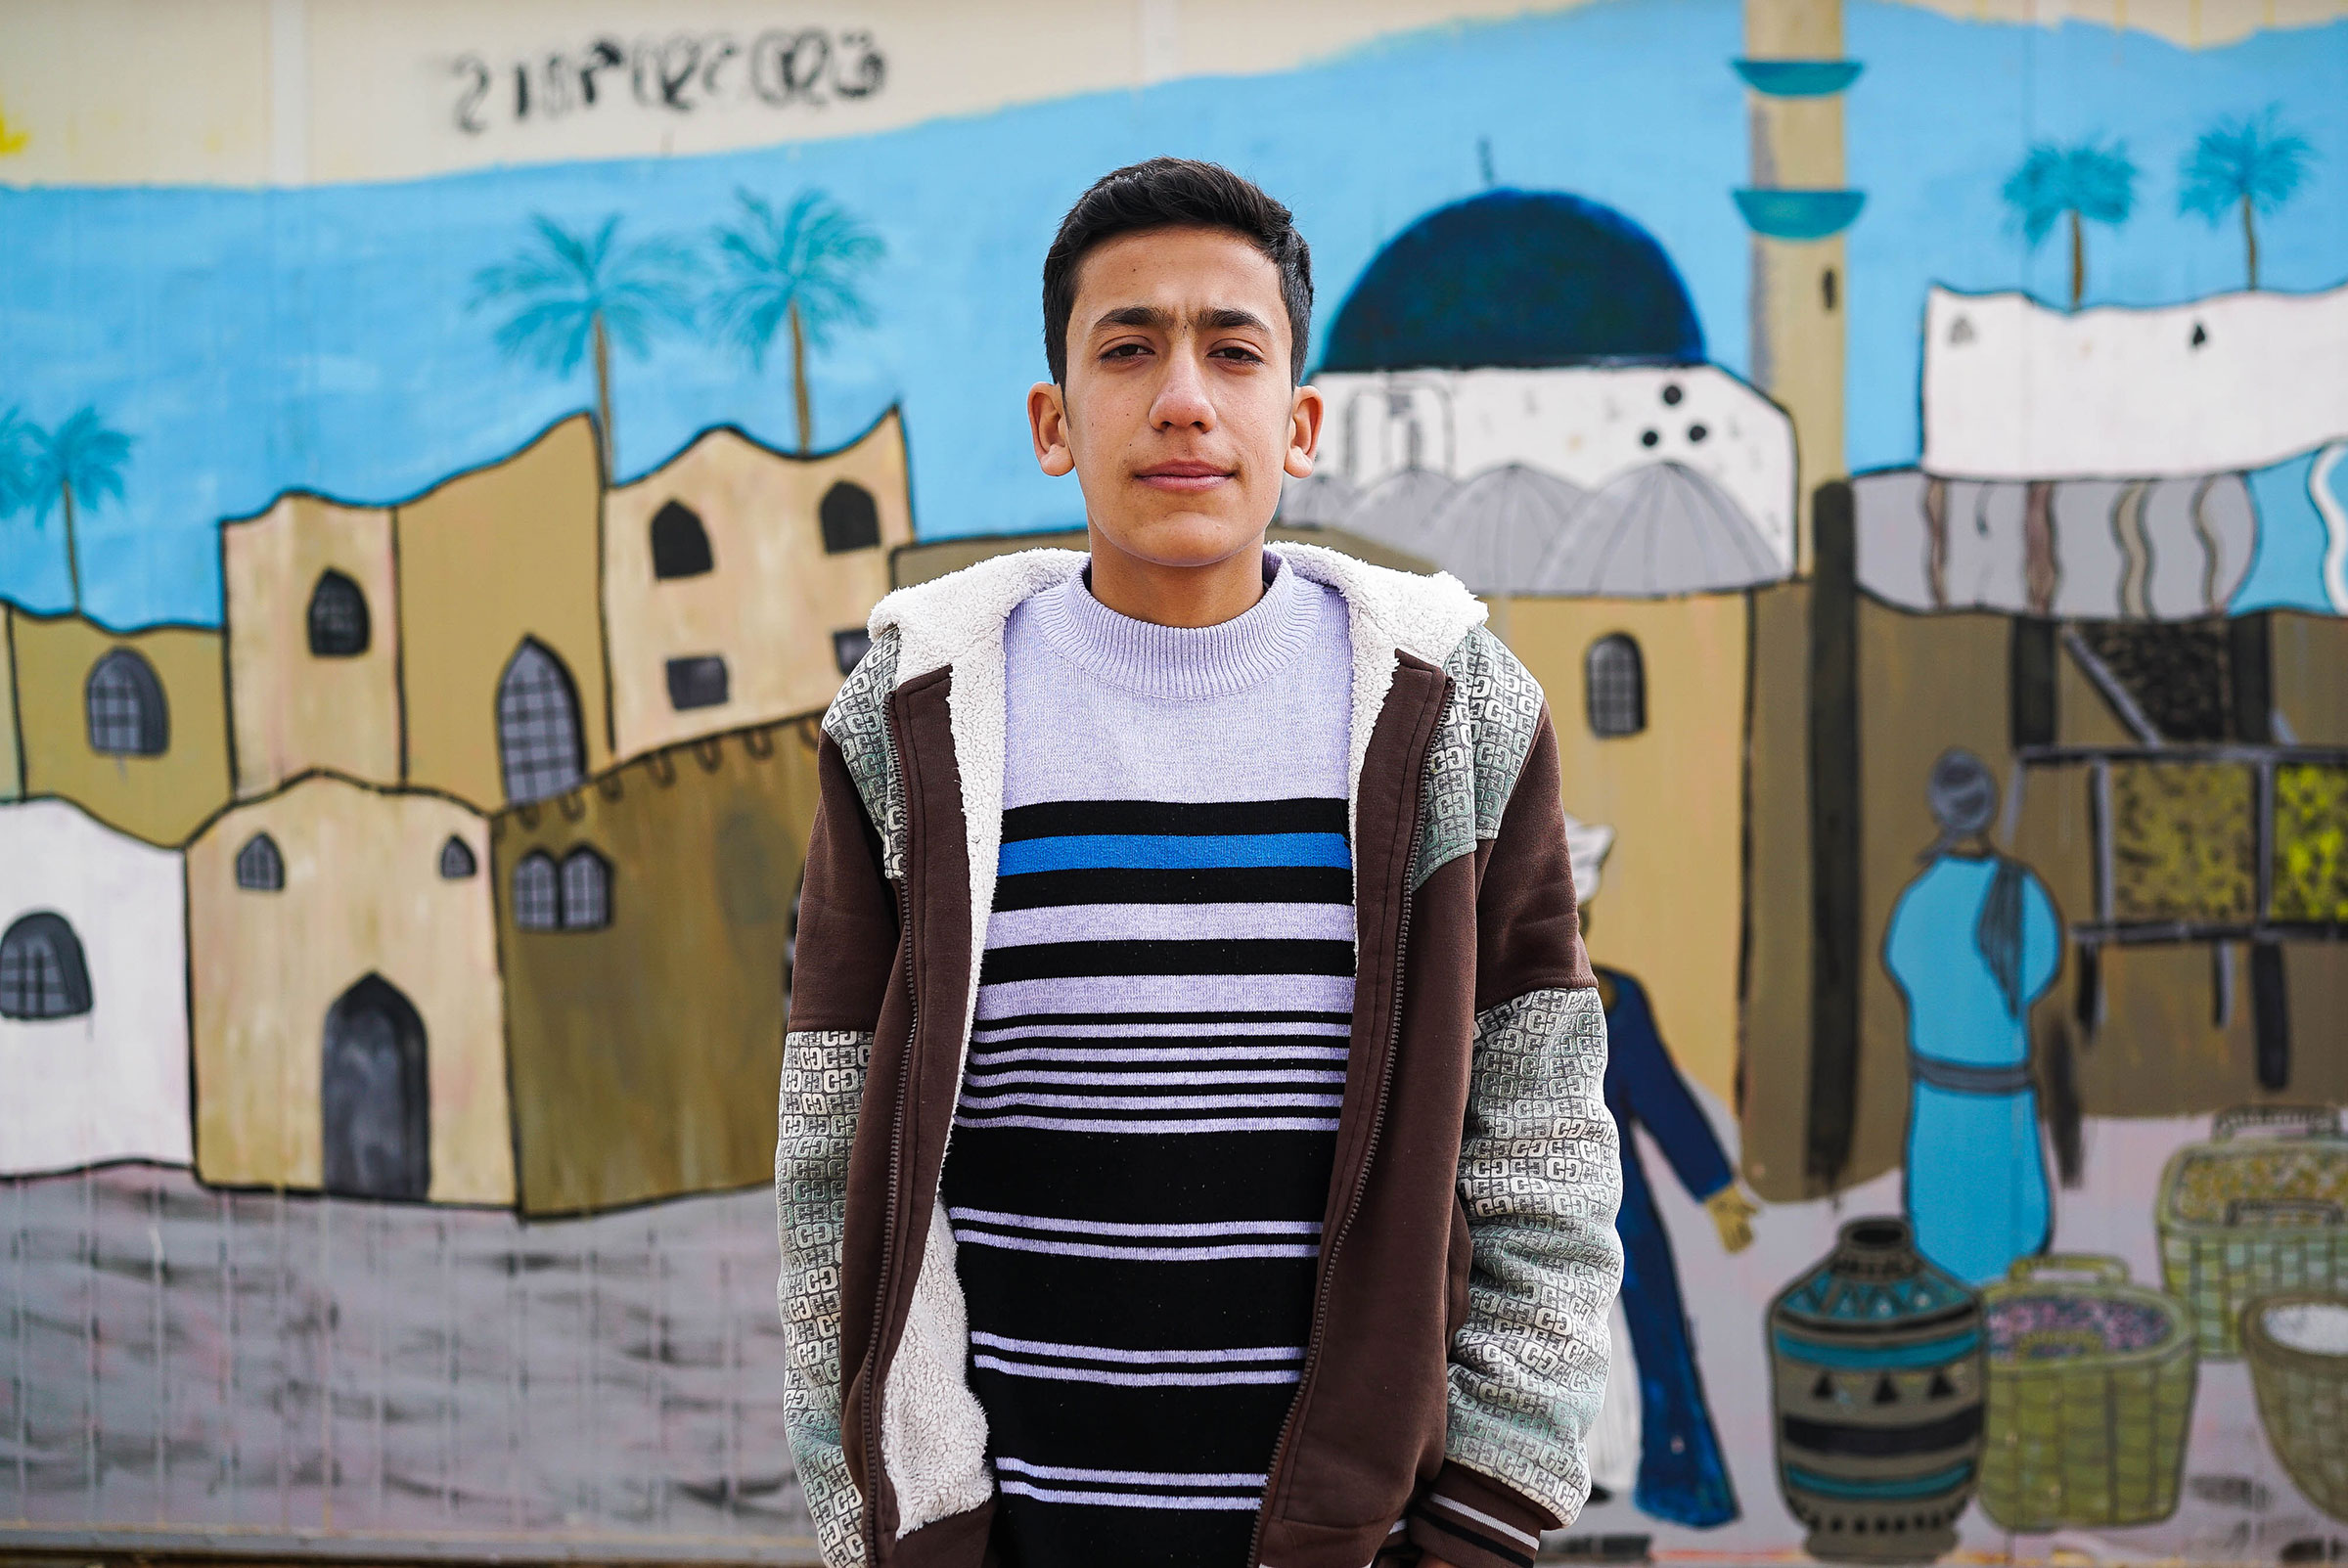 Dreaming in Za'atari - In Jordan's Za'atari refugee camp, explore three Syrian teenagers' hopes and dreams for the future through VR animations that transform the spaces around them.